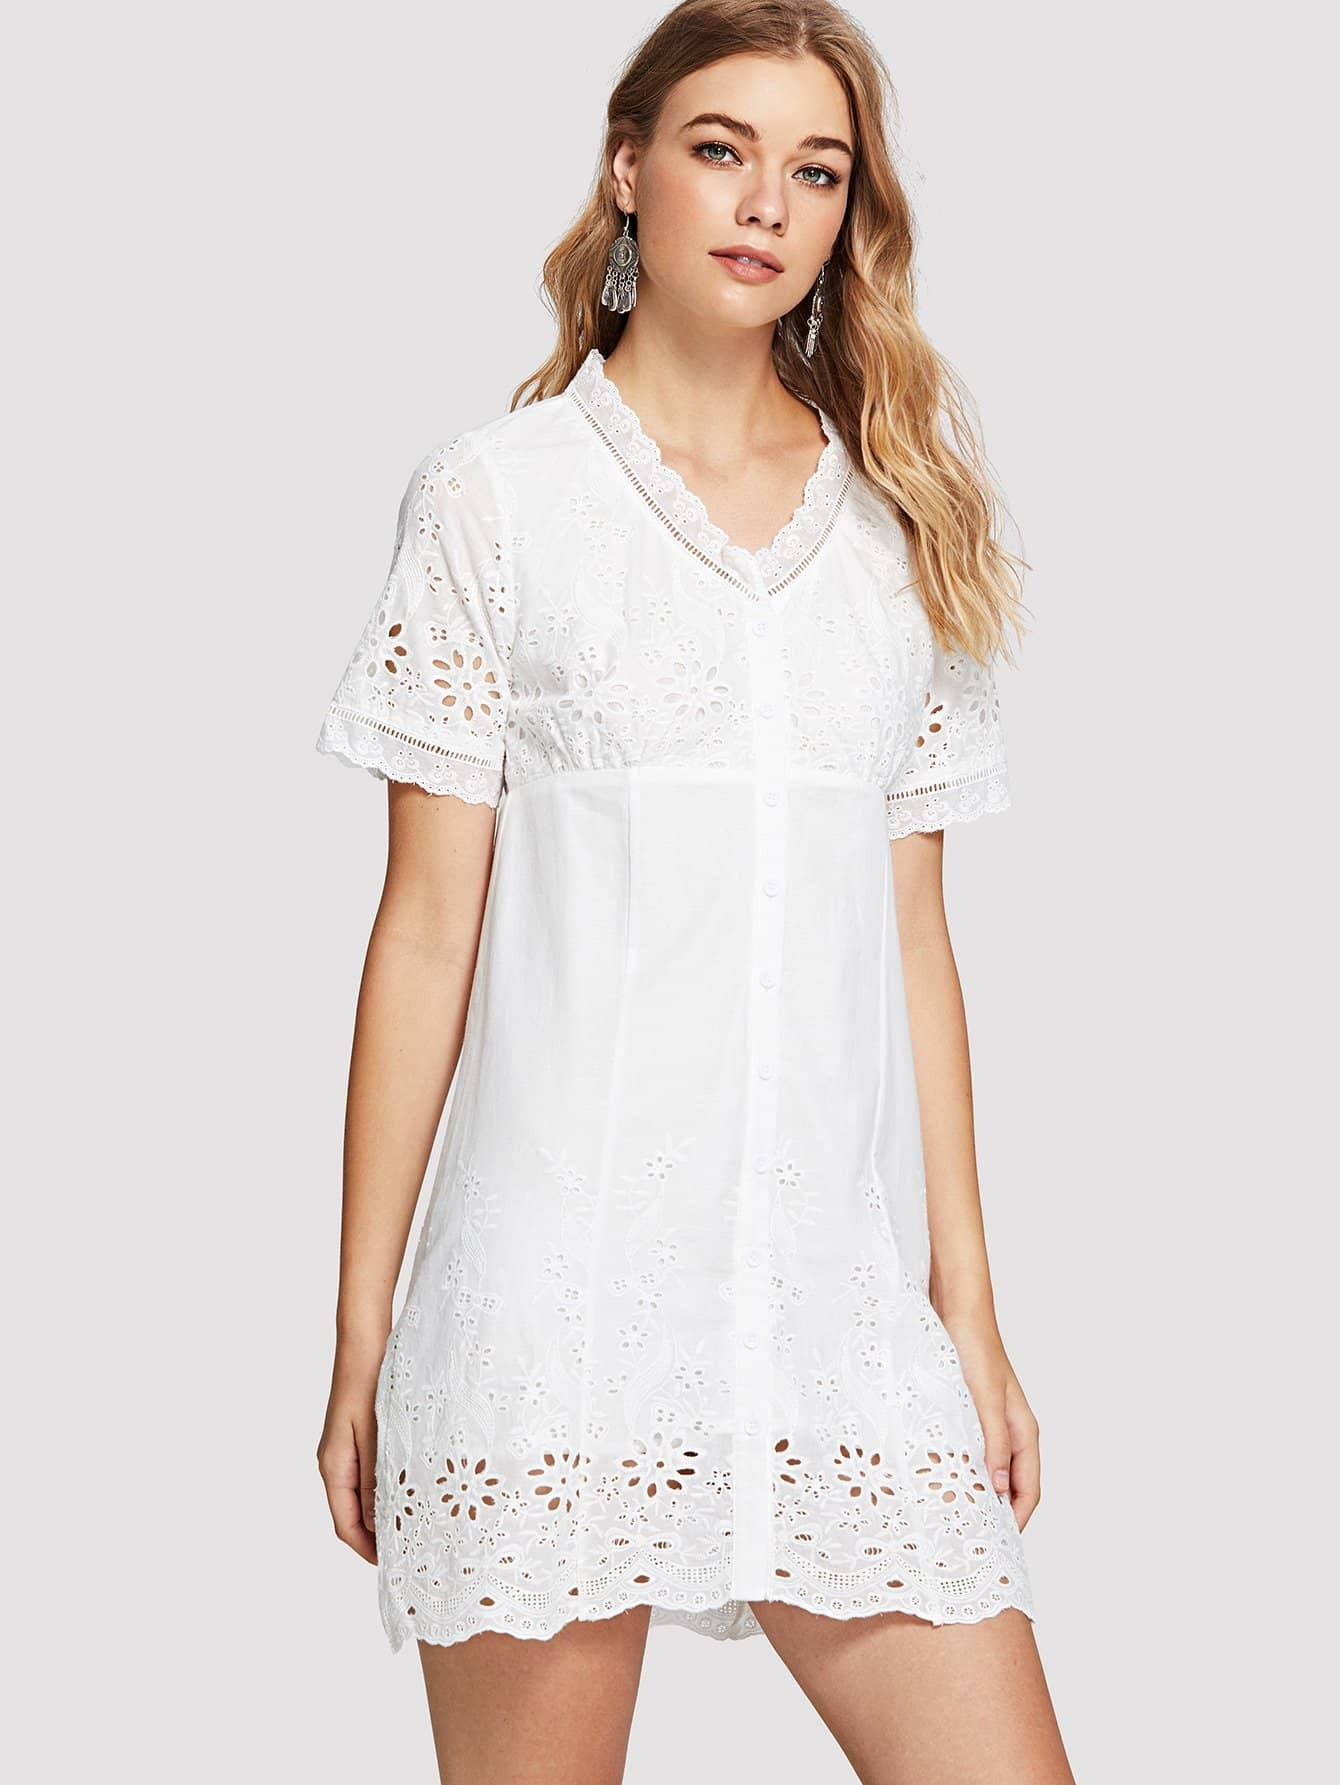 Laddering Lace Detail Eyelet Embroidered Button Up Dress lace up detail jeans